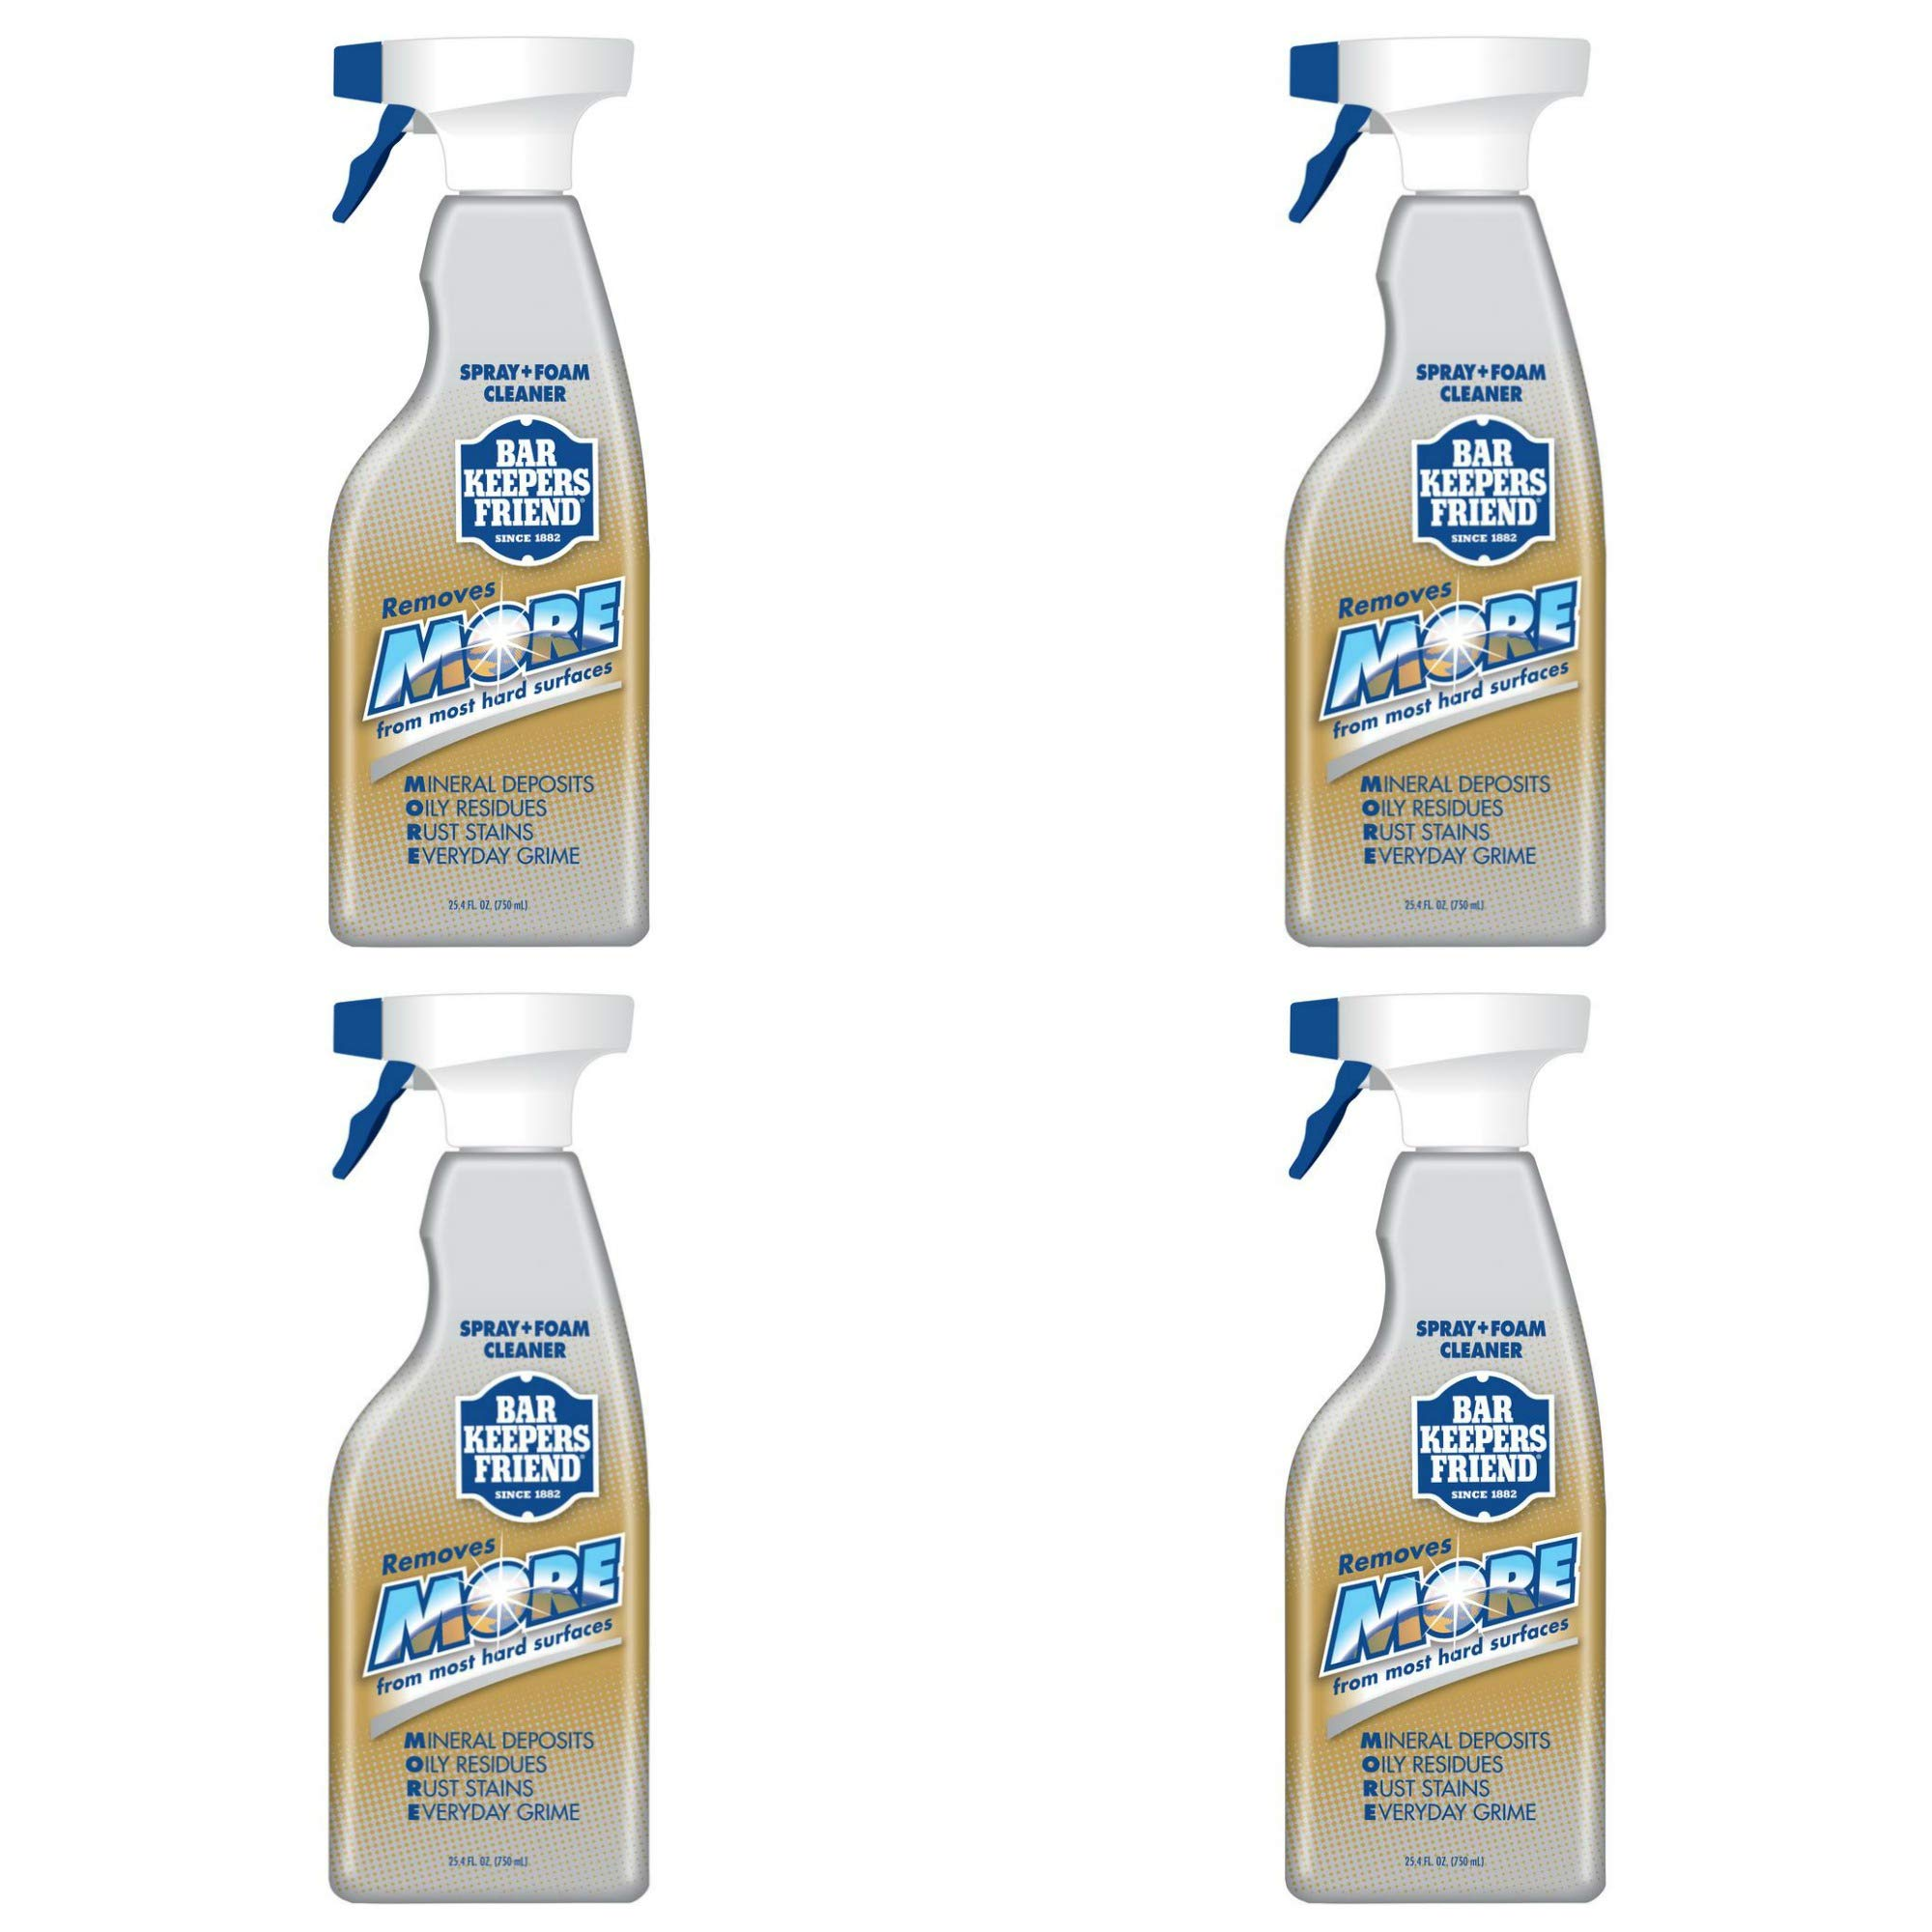 Bar Keepers Friend NEW trigger Spray + Foam Cleaner for Stainless Steel/Tile/Porcelain/Ceramic/Aluminum/Copper/Brass/Chrome/Glass, 25.4 Oz. (4-Pack)